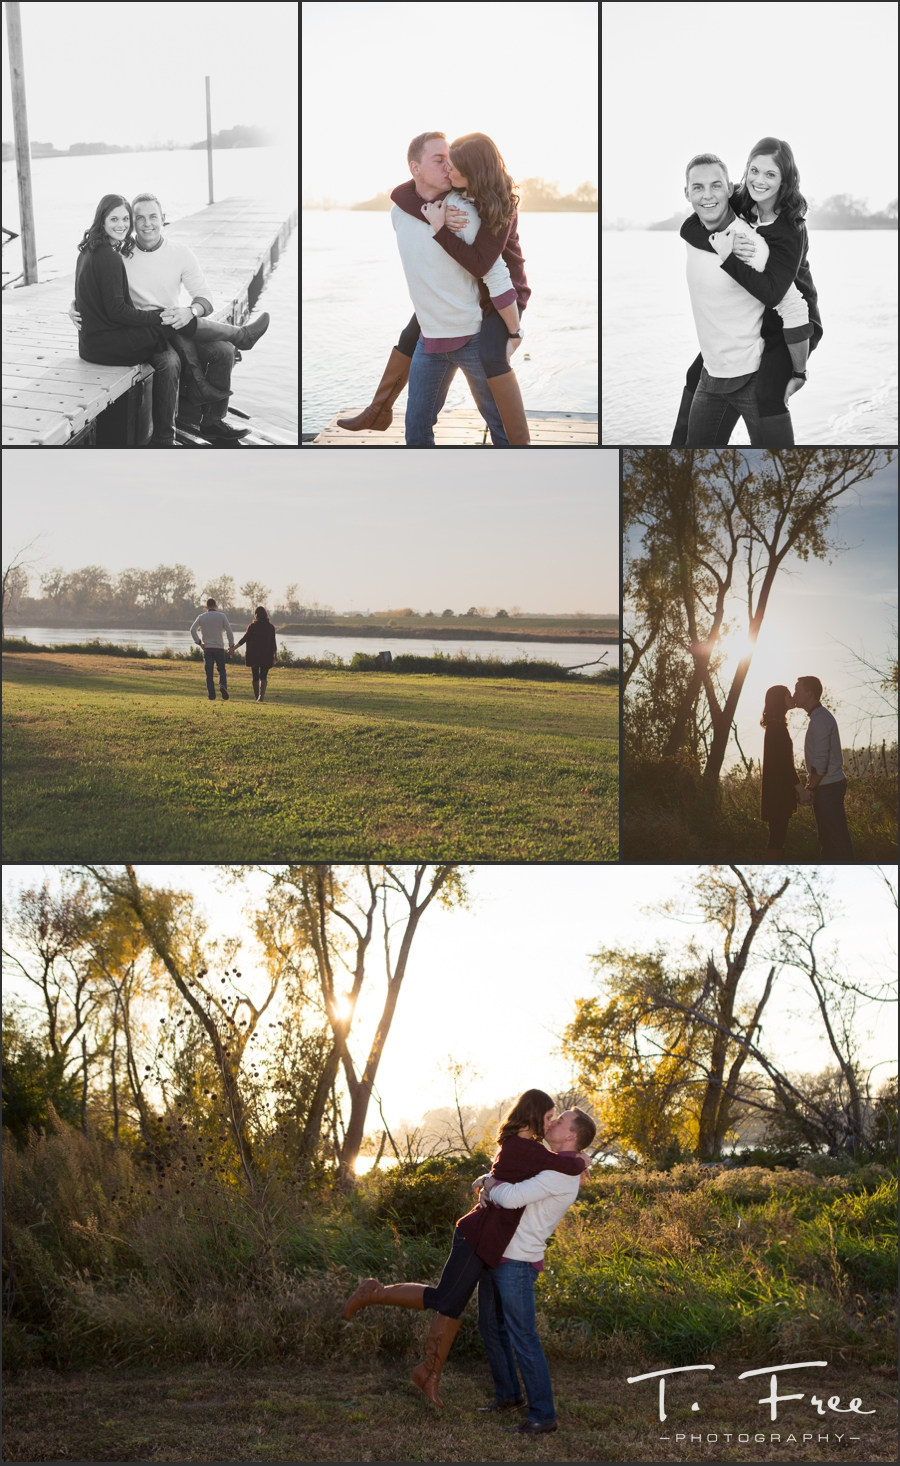 Engagement session with medical school couple near Missouri River council bluffs, iowa.